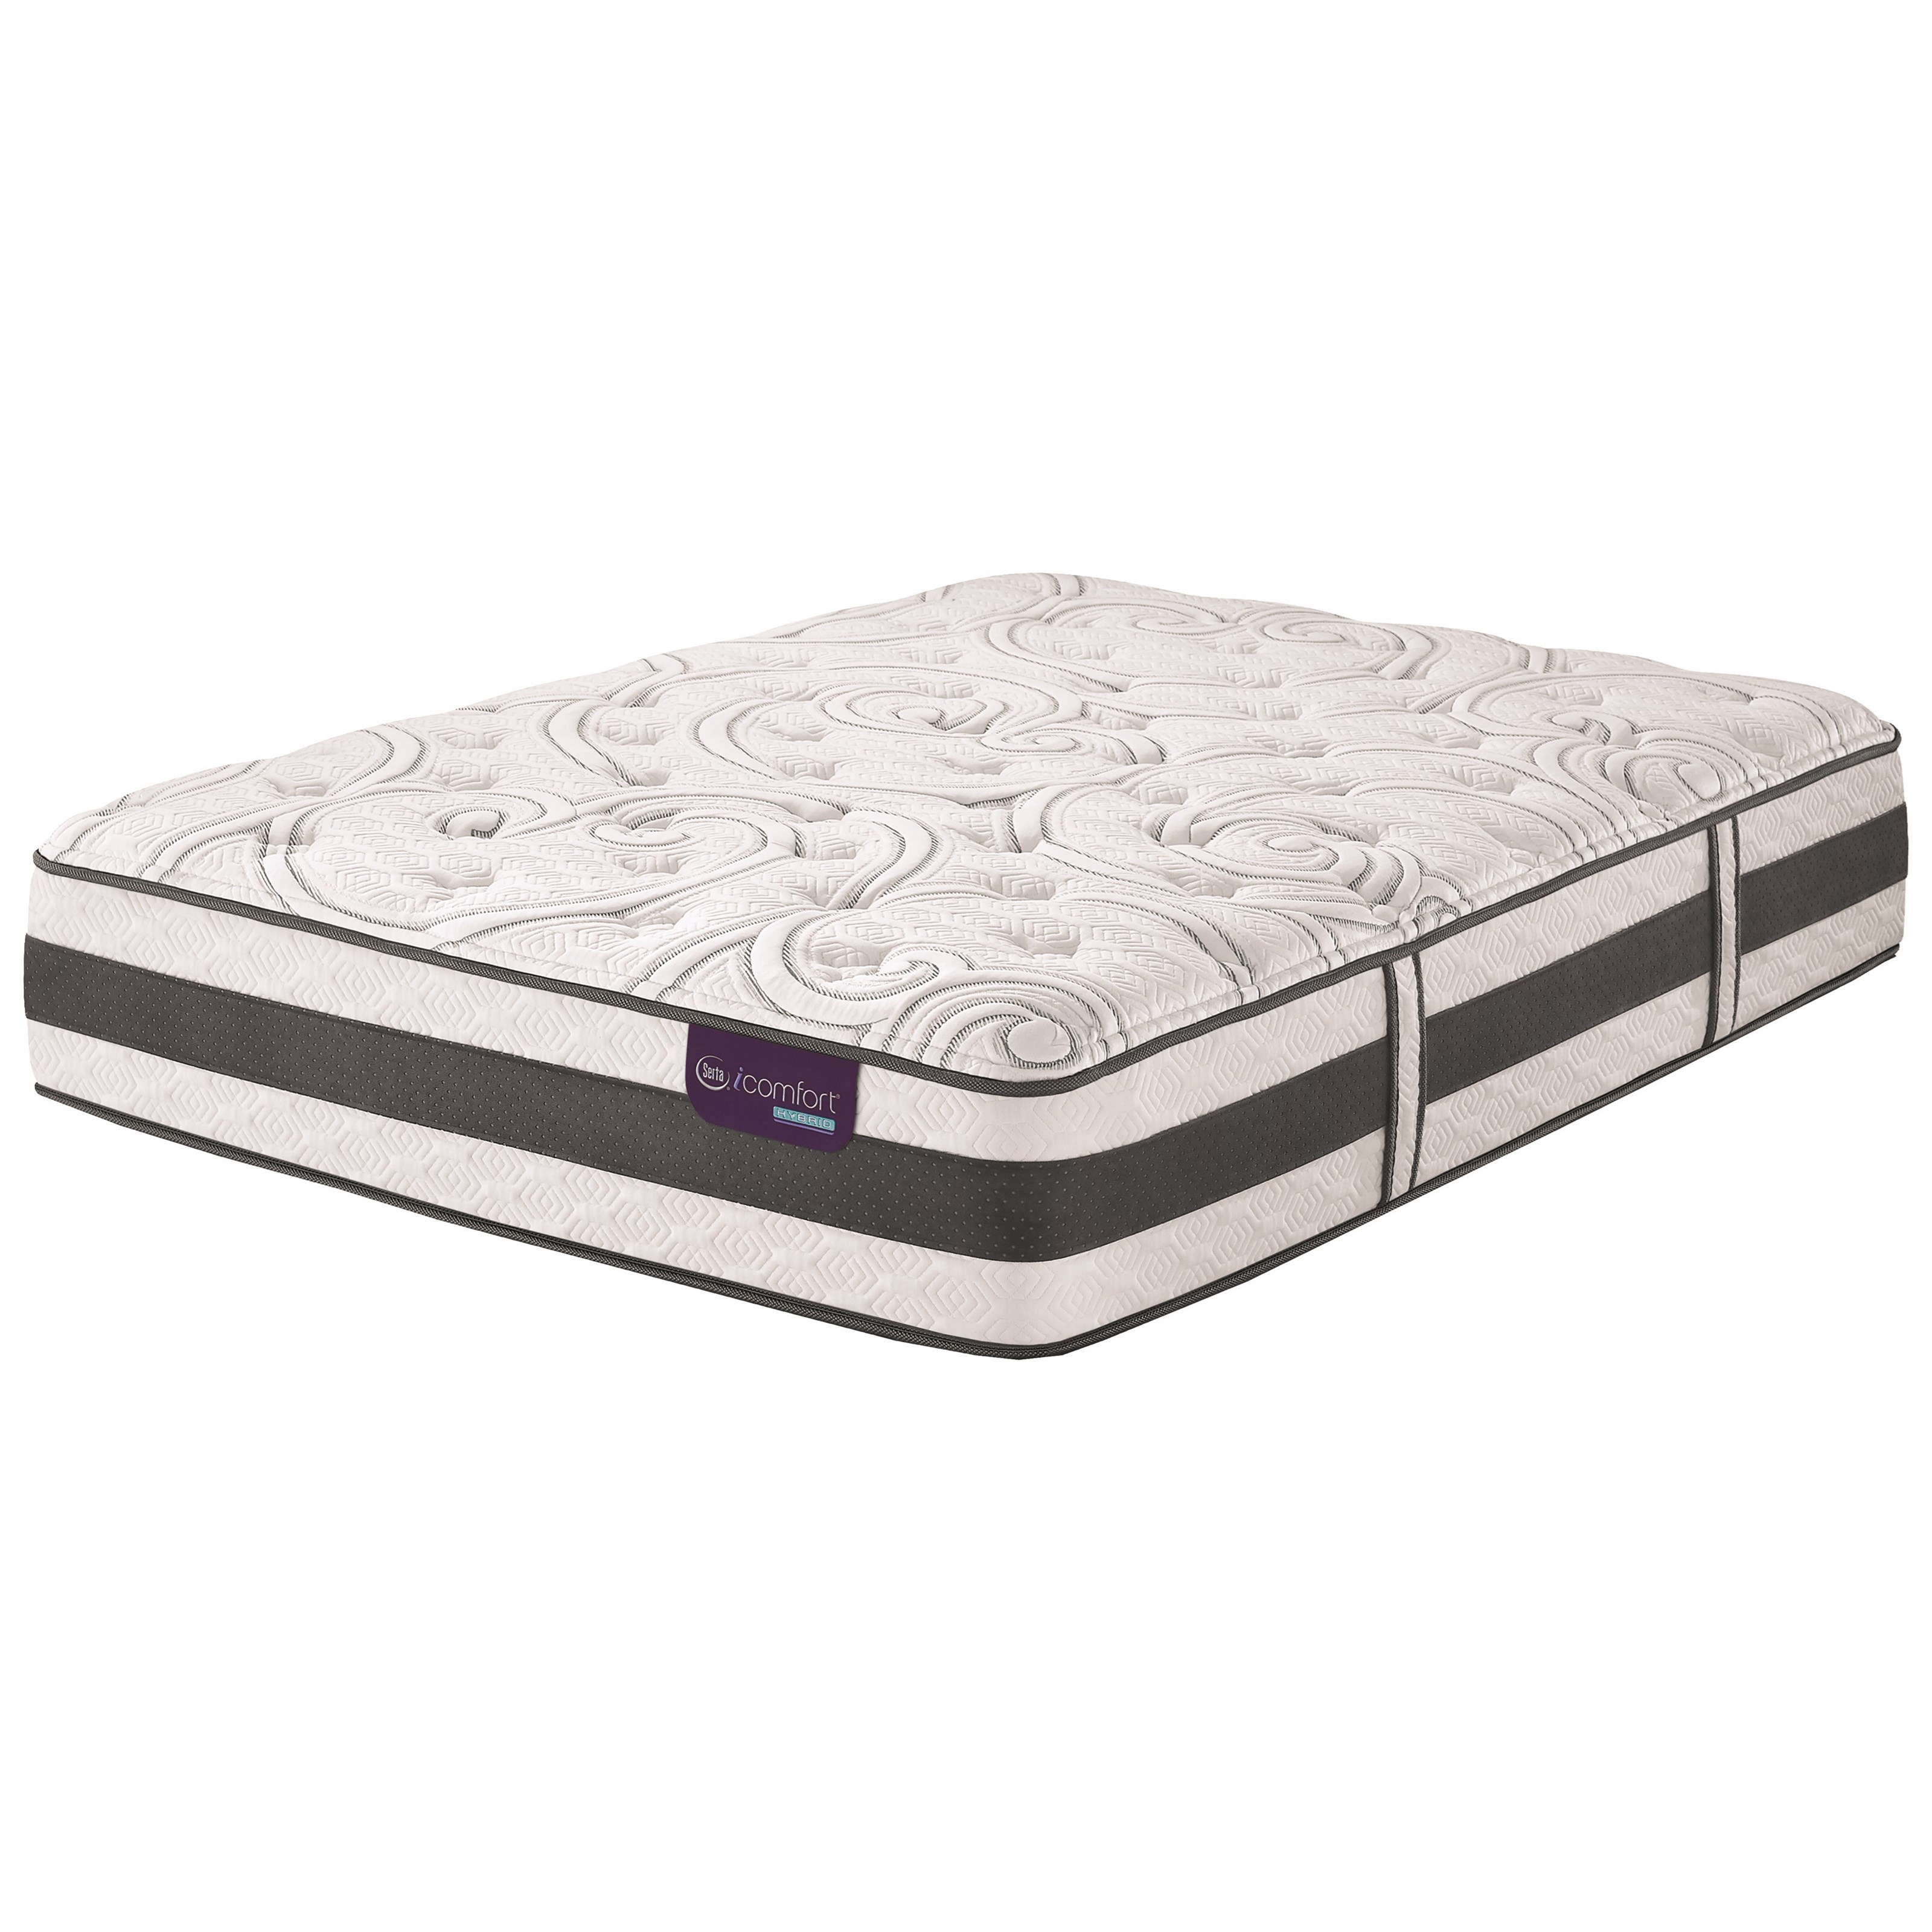 Serta iComfort Hybrid Applause II Full Plush Hybrid Quilted Mattress - Item Number: ApplauseIIPlush-F